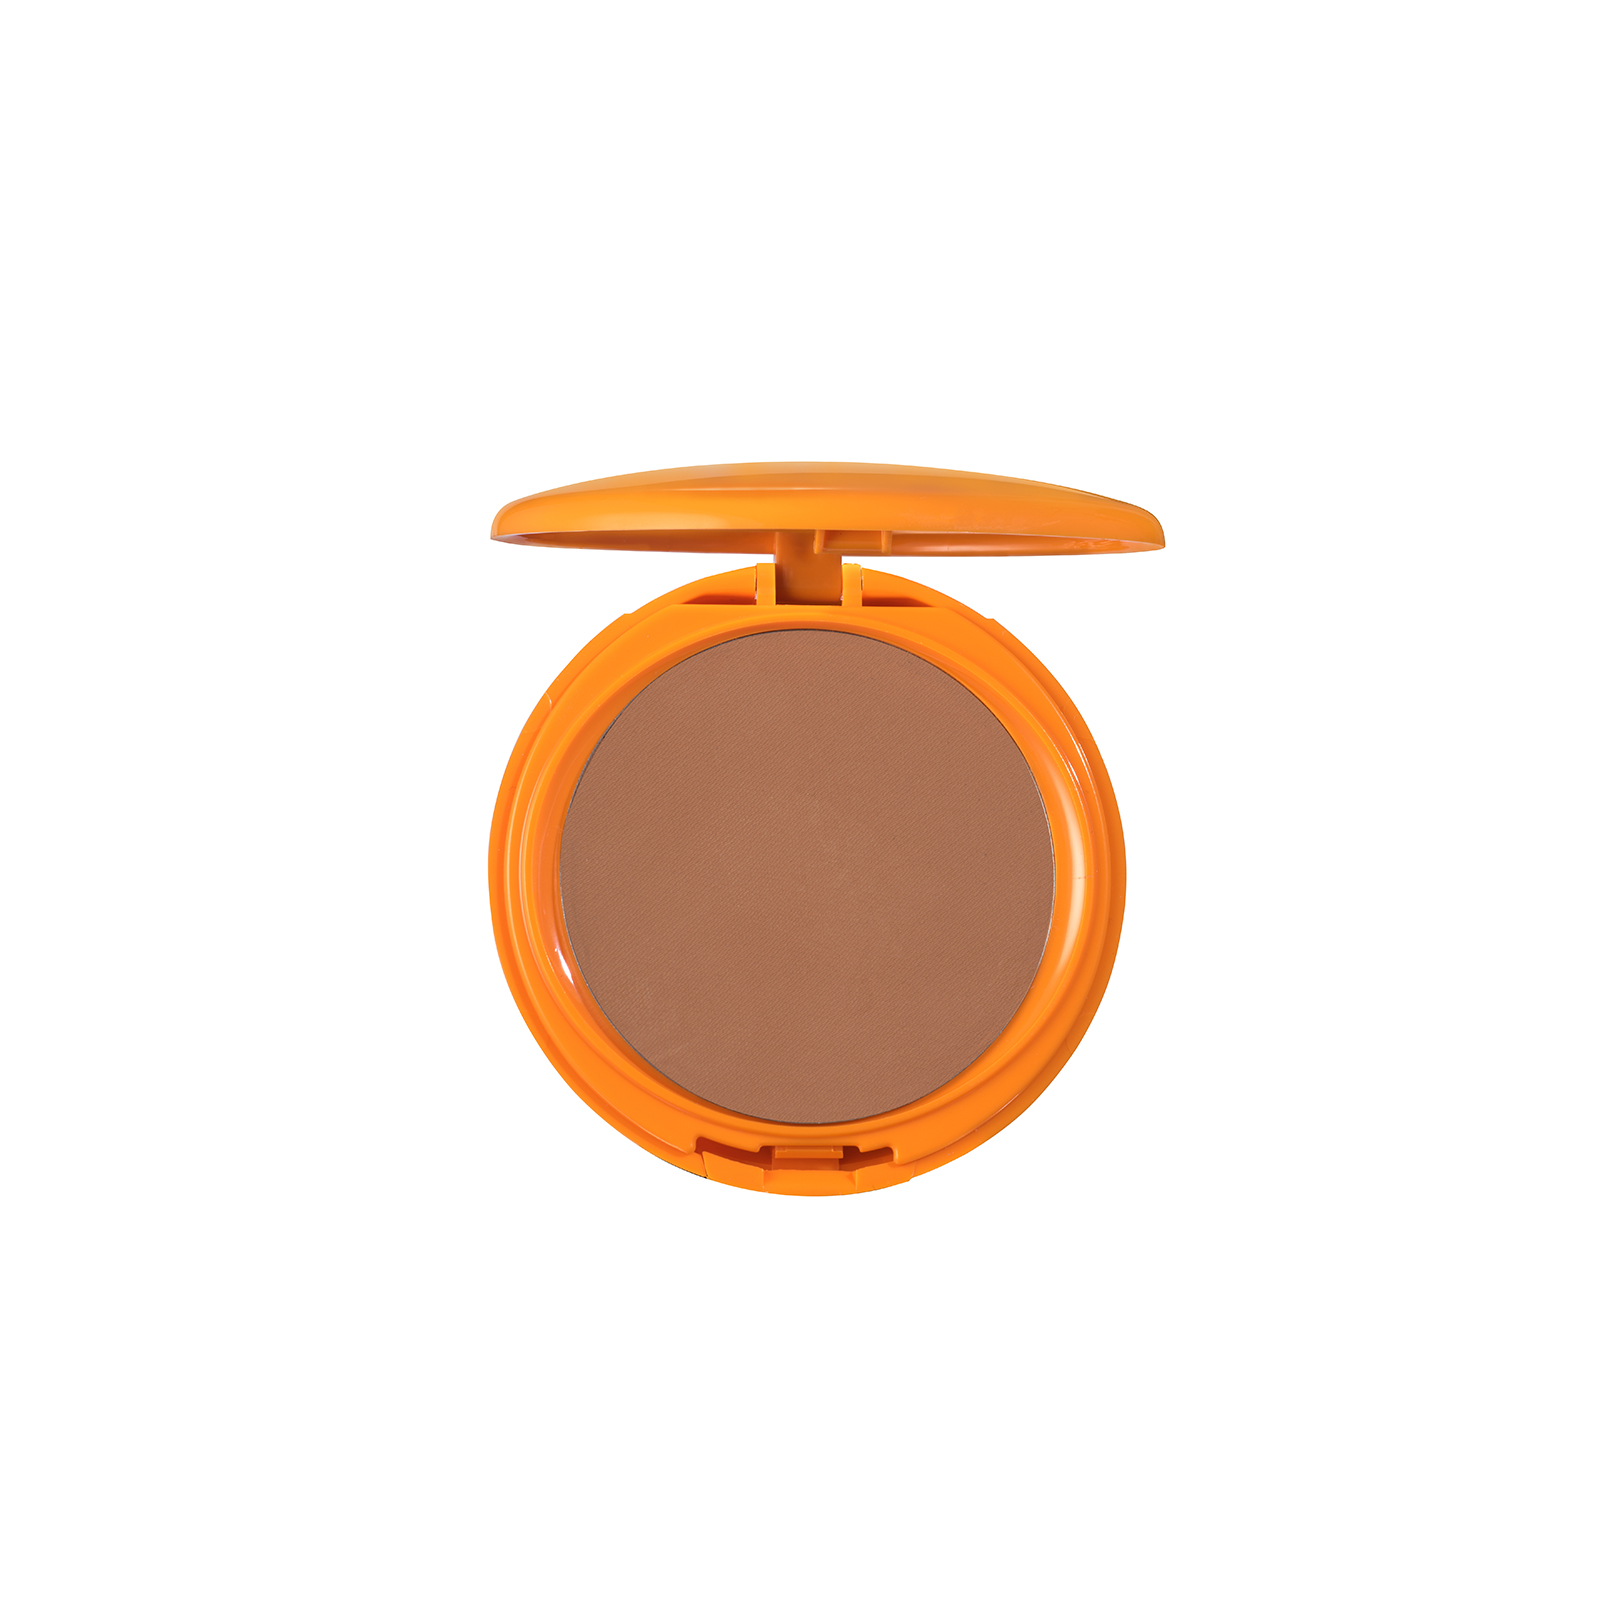 PHOTO AGEING PROTECTION COMPACT POWDER SPF 30 (03 Sand)